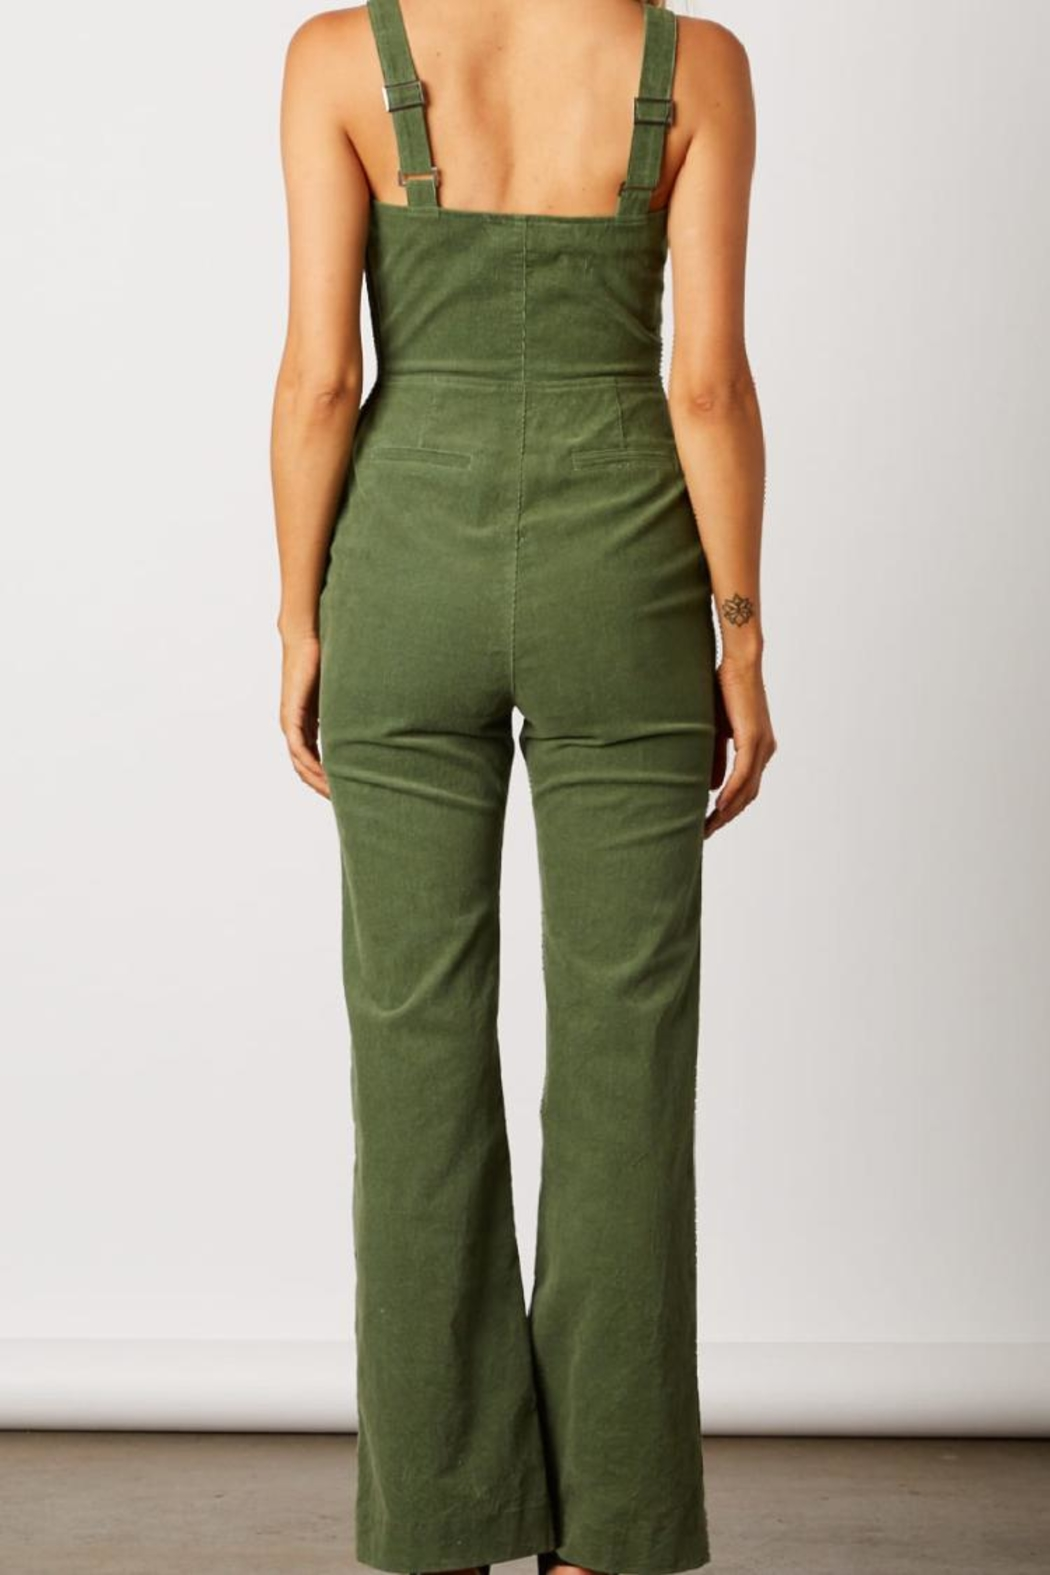 Cotton Candy LA Olive Green Jumpsuit - Front Full Image